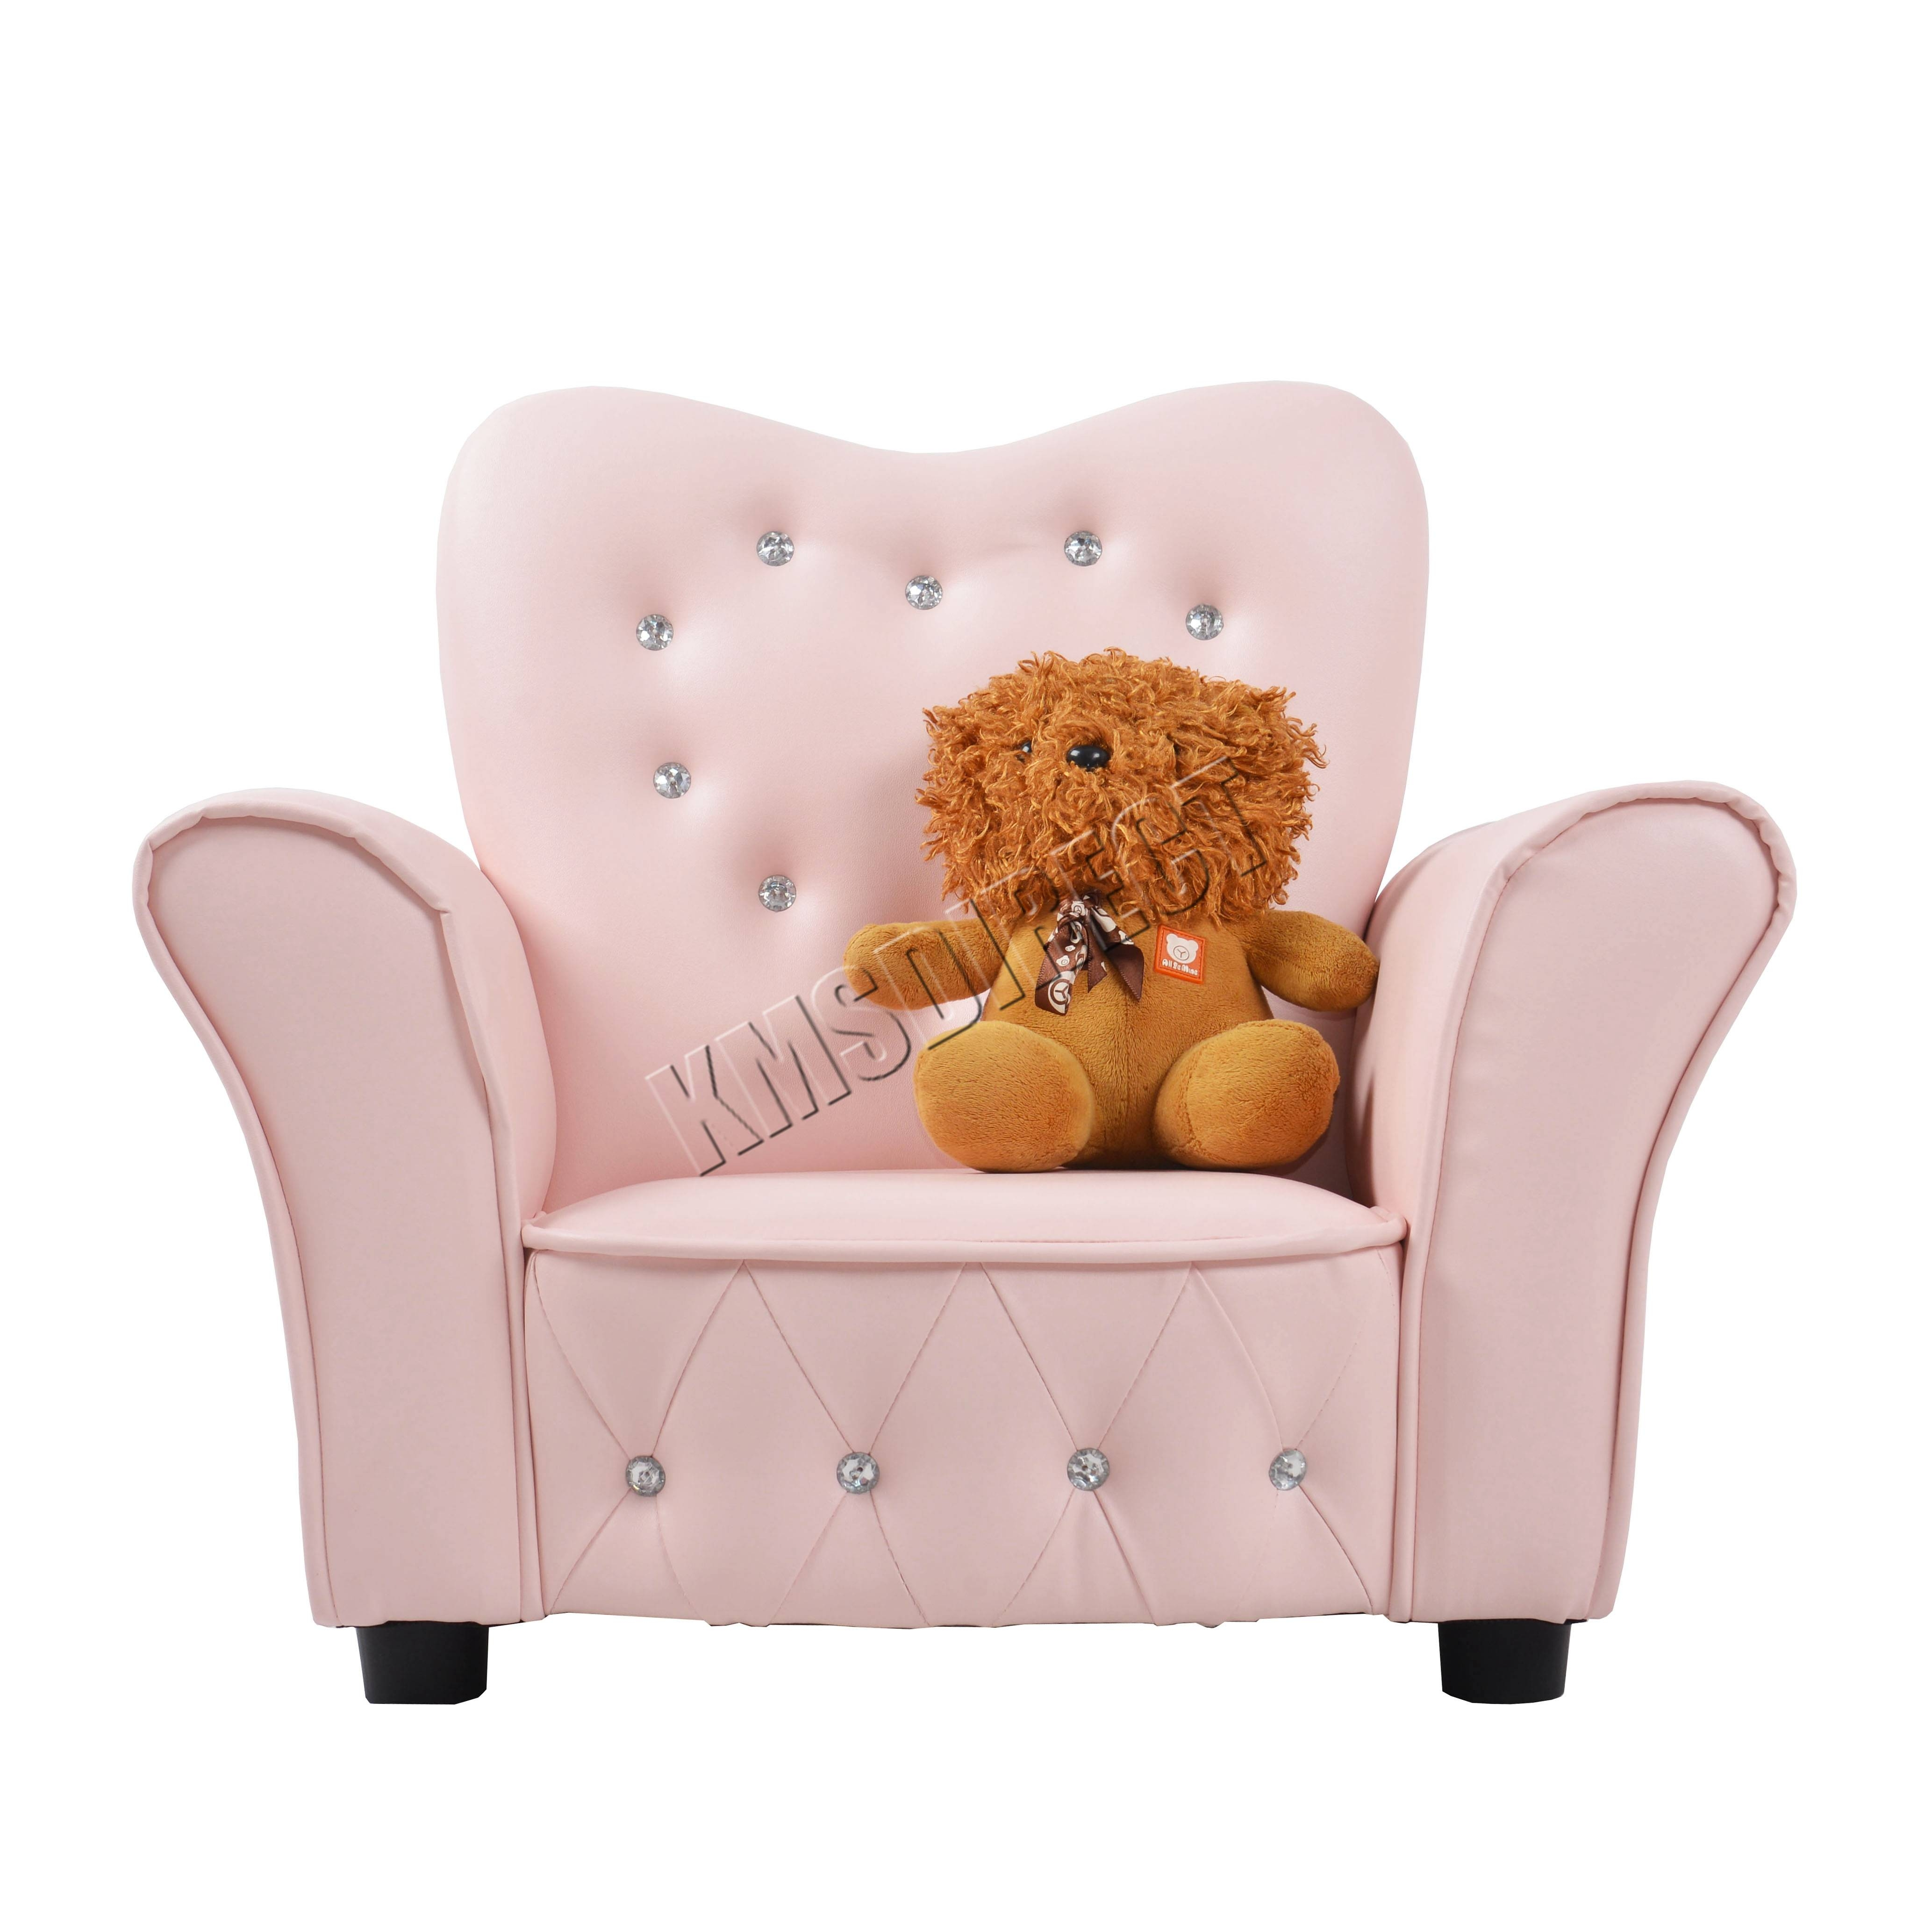 Foxhunter Kids Armchair Games Chair Boys Girls Sofa Children Seat Intended For Childrens Sofa Chairs (View 6 of 15)